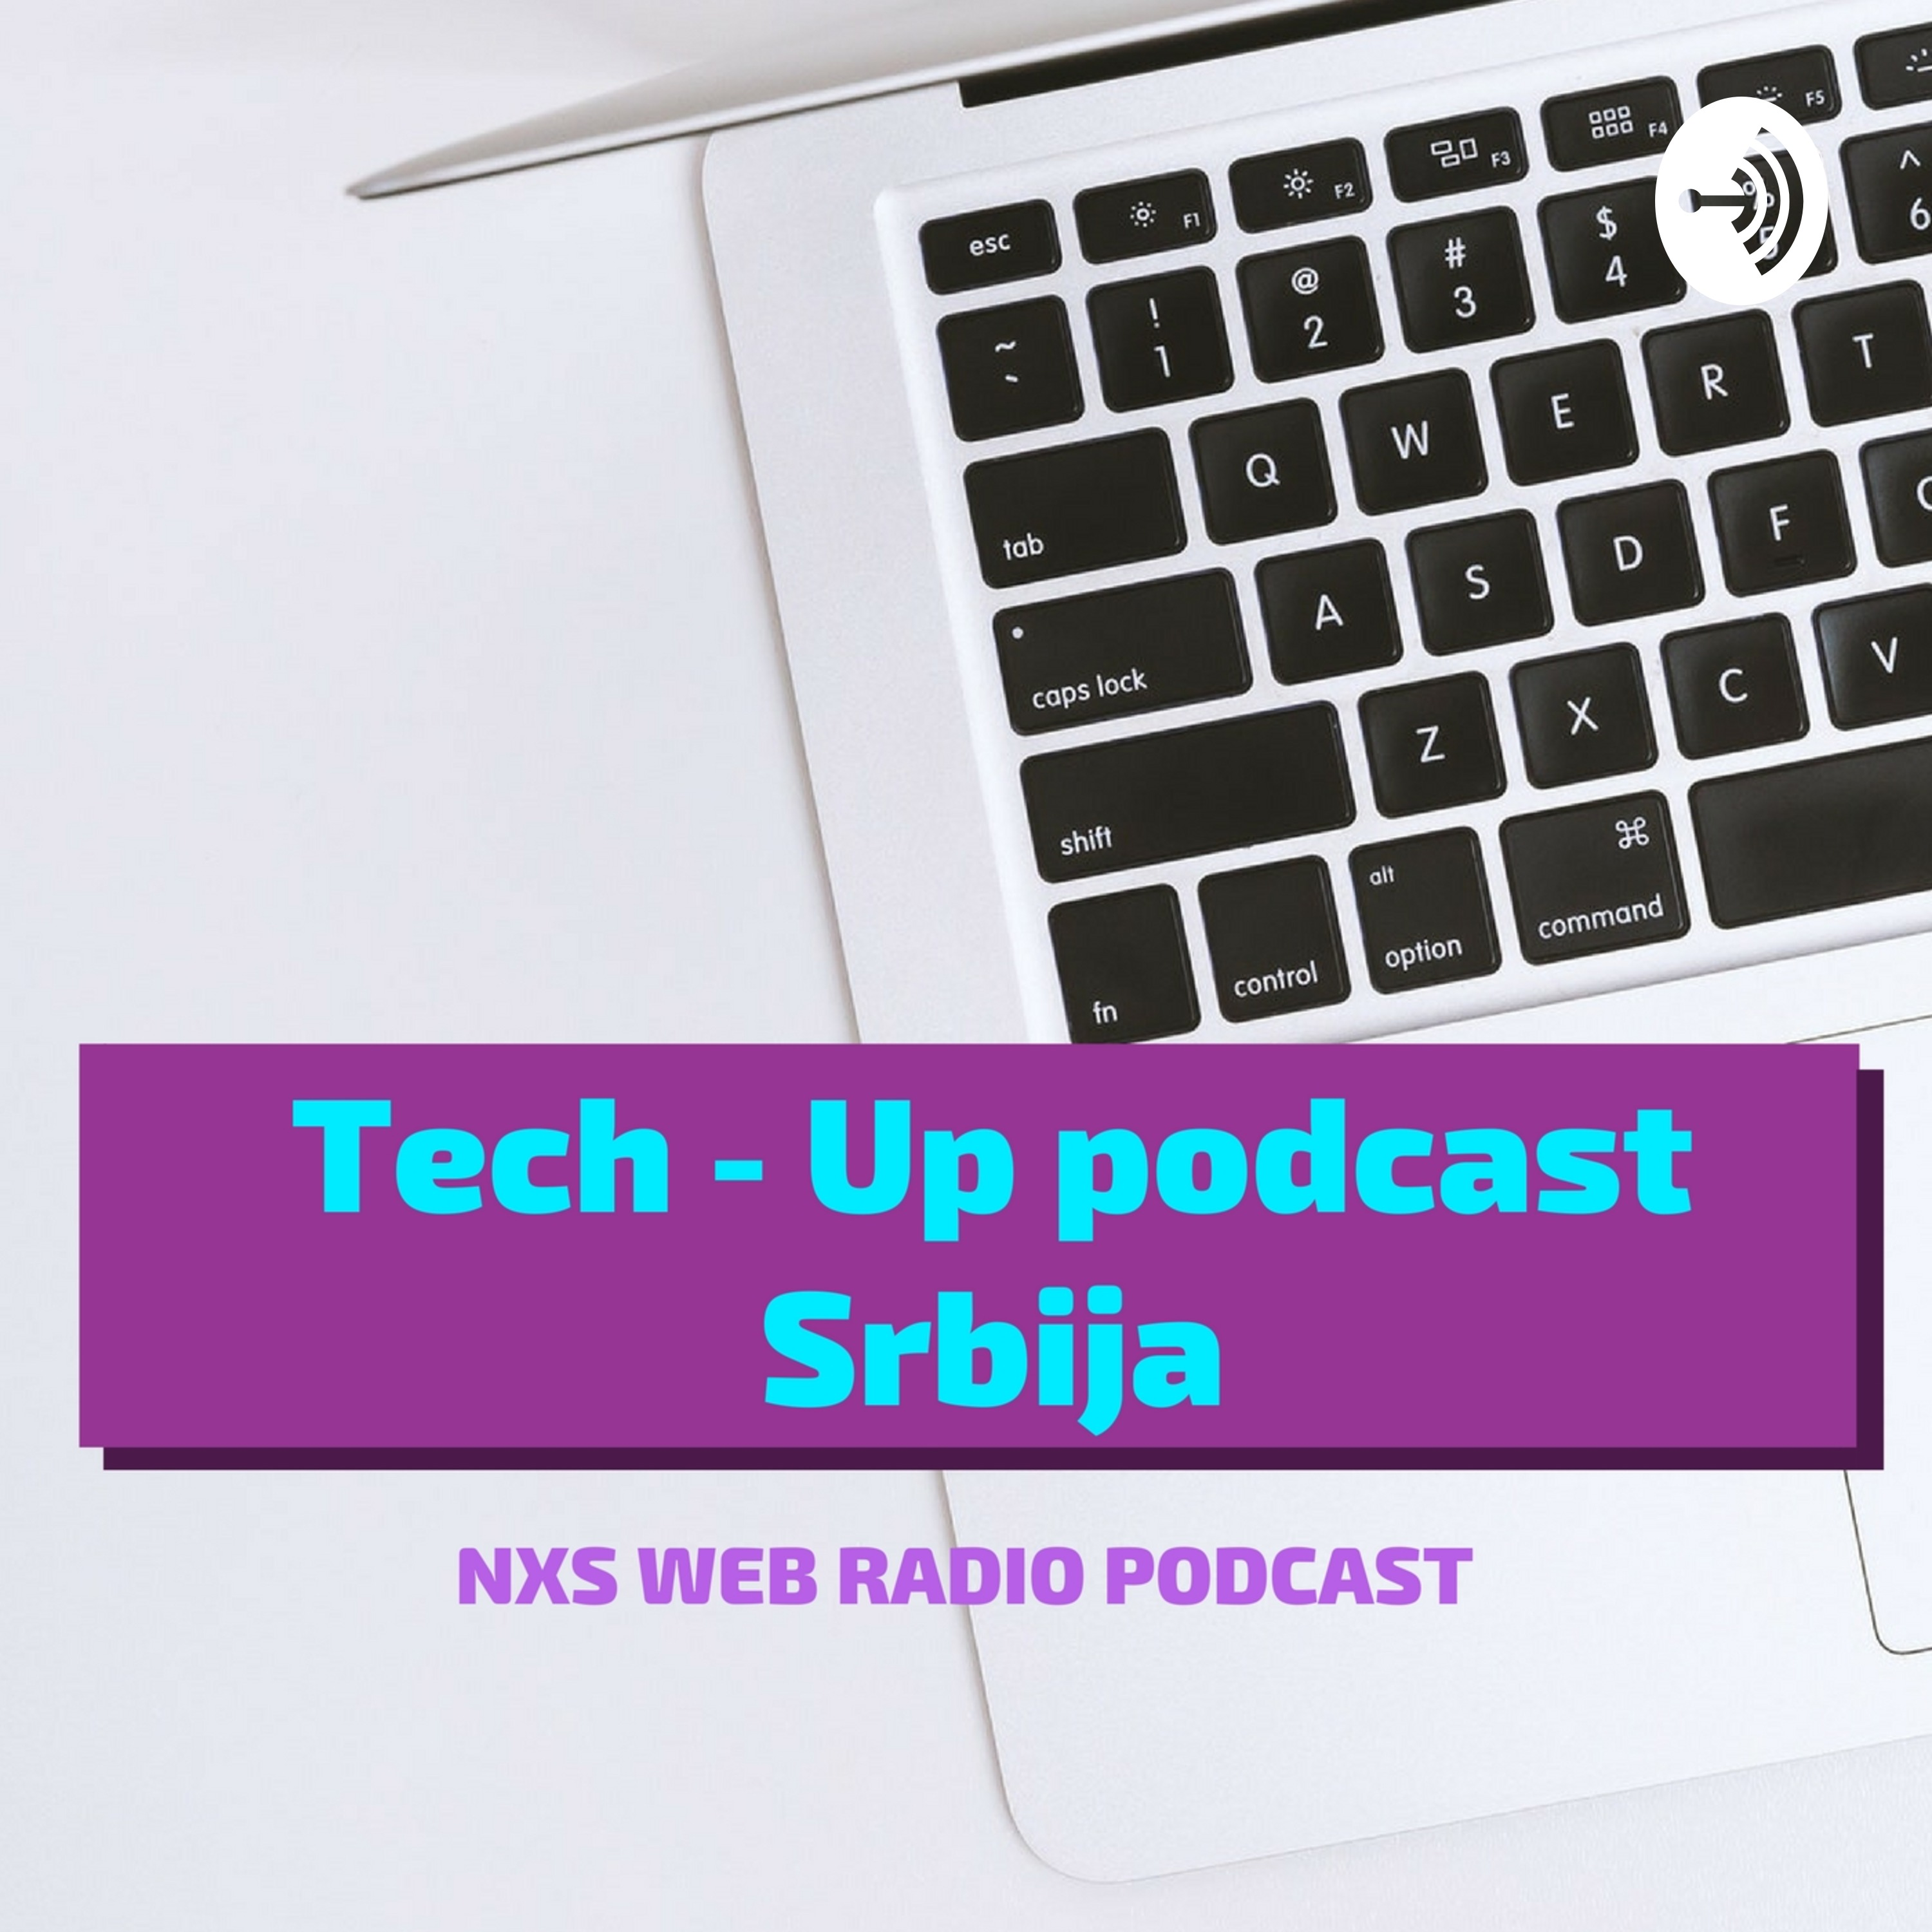 Tech Up podcast Srbija